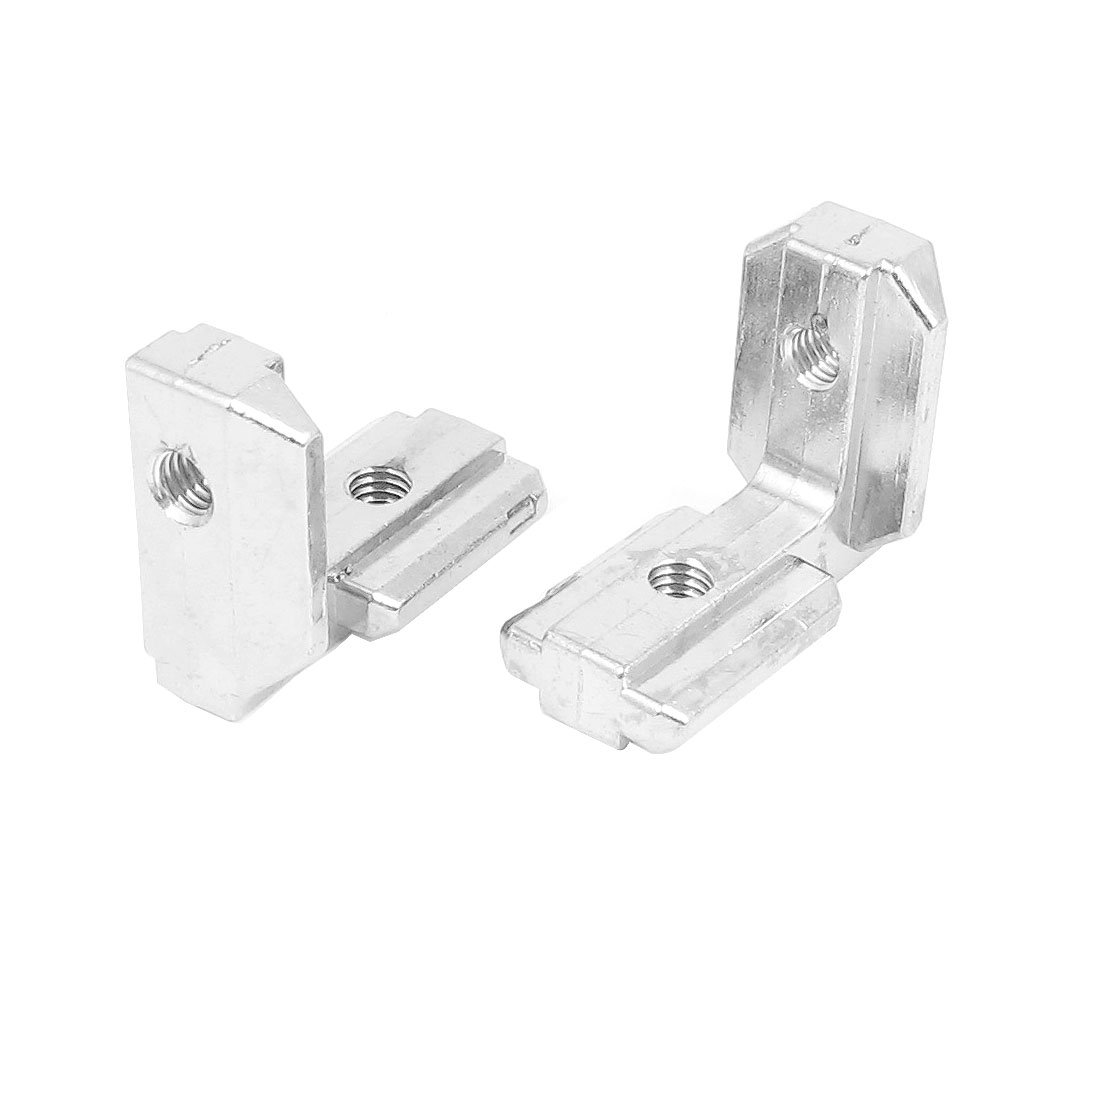 2pcs Silver Tone T Slot 90 Degree Stainless Steel Corner Connector 38mm x 32mmx 19mm